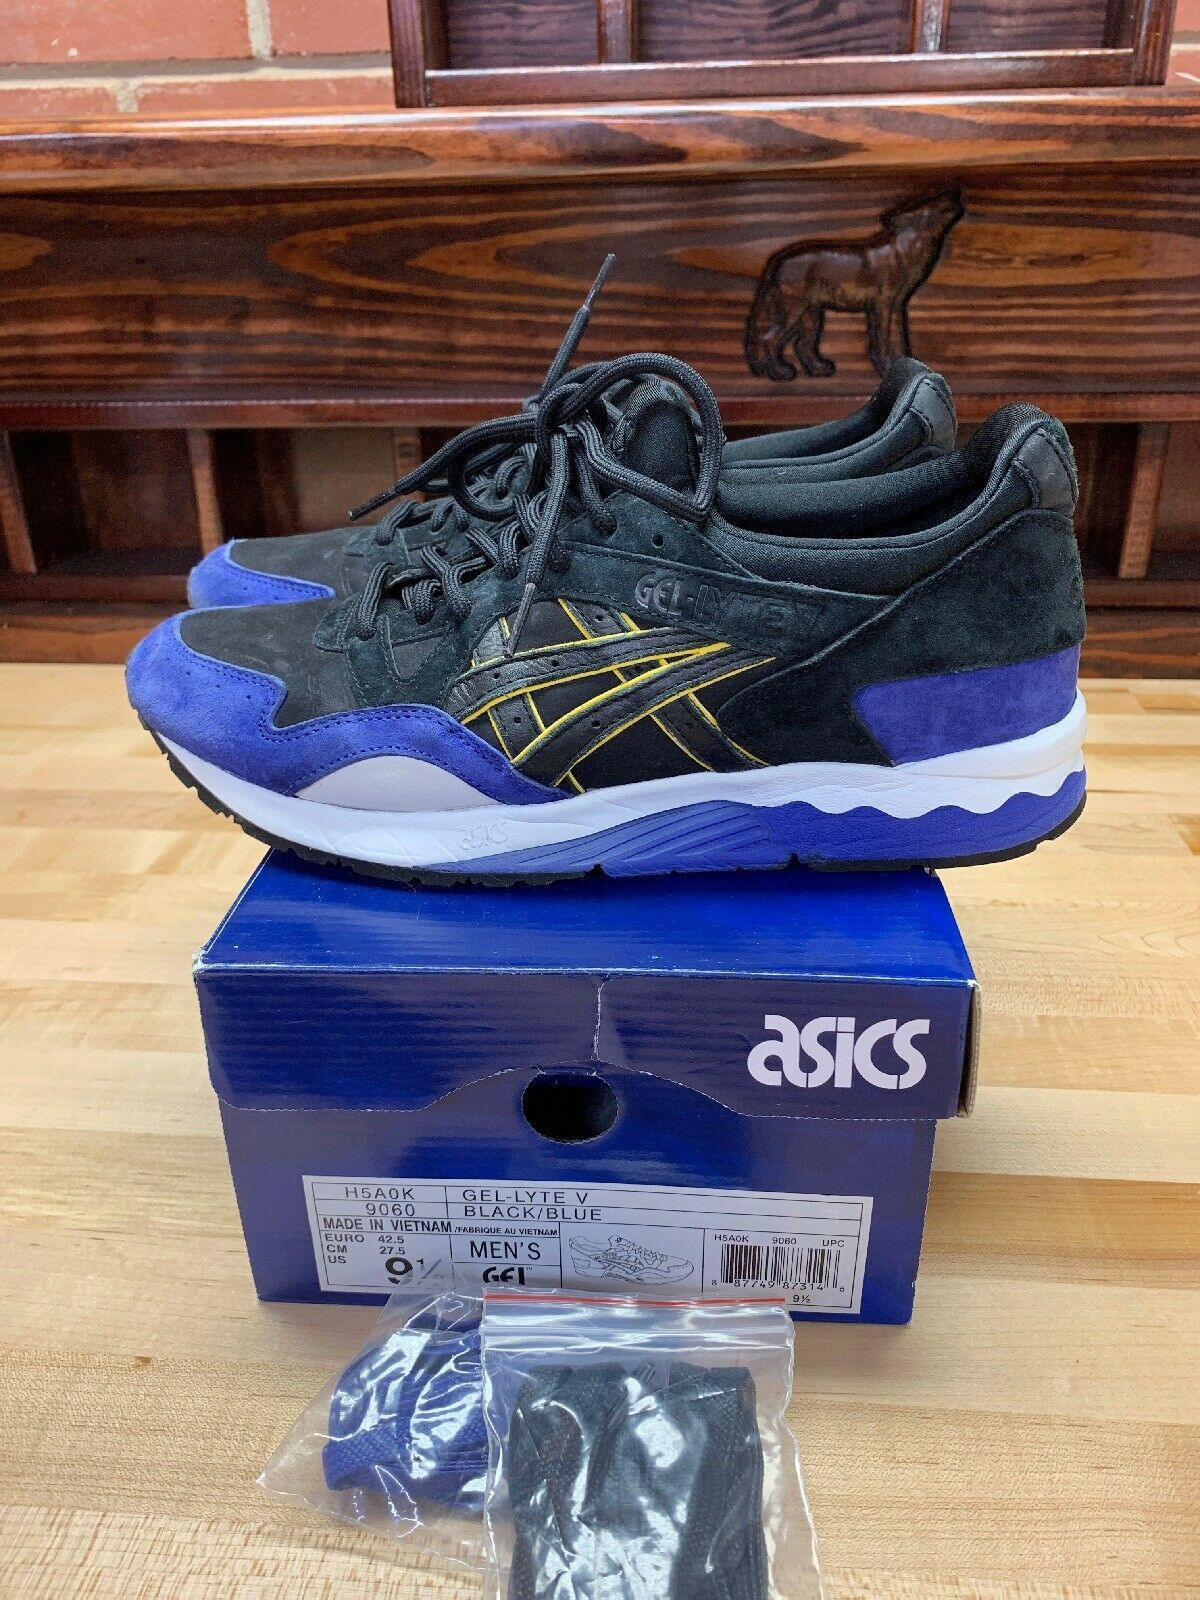 Asics Gel-Lyte V Splash City Negro Azul Talla 9.5